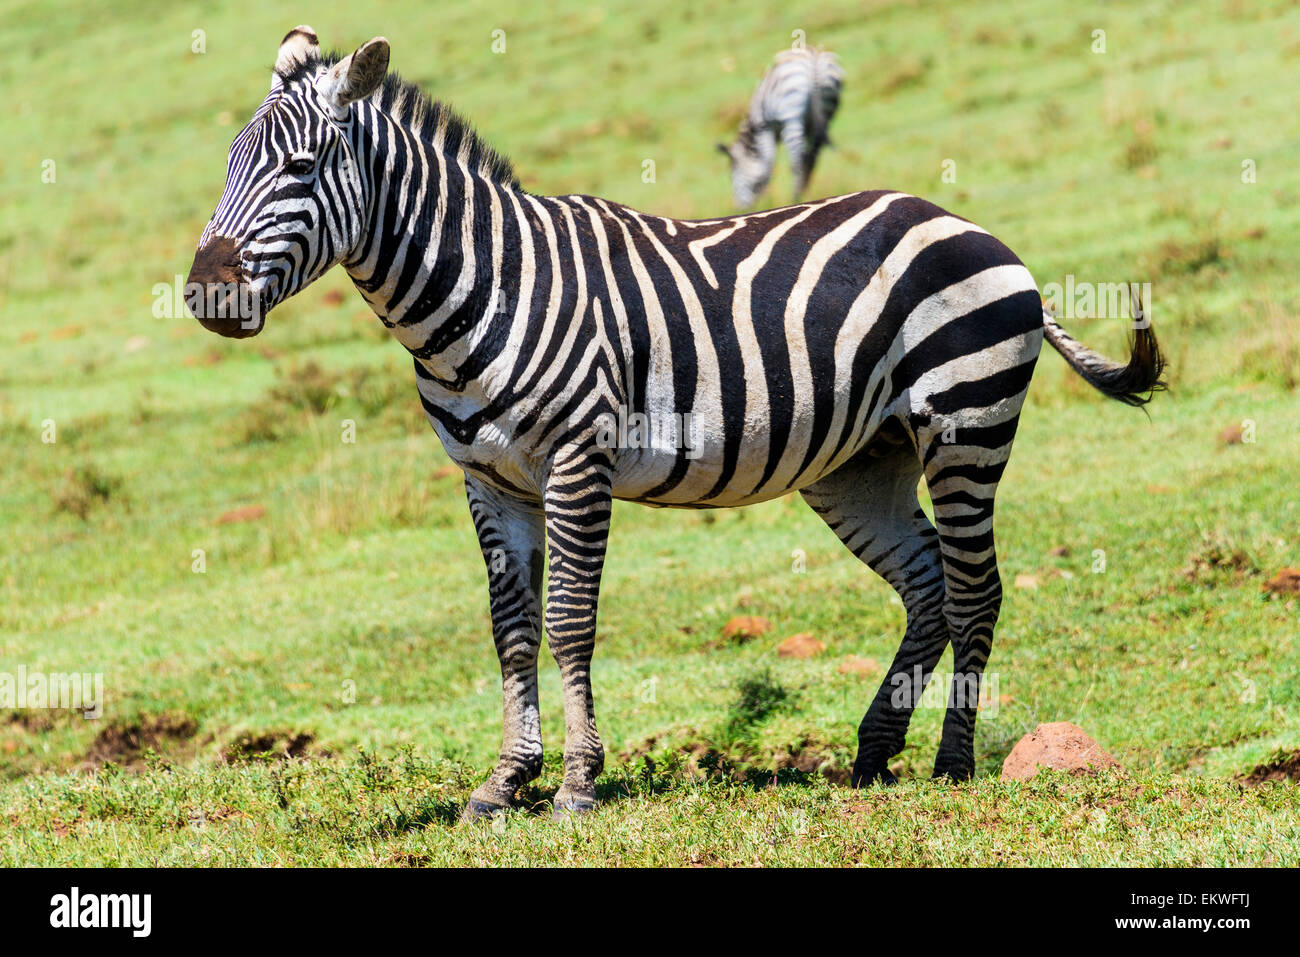 Equus quagga Zebra portrait in the Ngorongoro crater slopes going to Serengeti, Tanzania, Africa - Stock Image